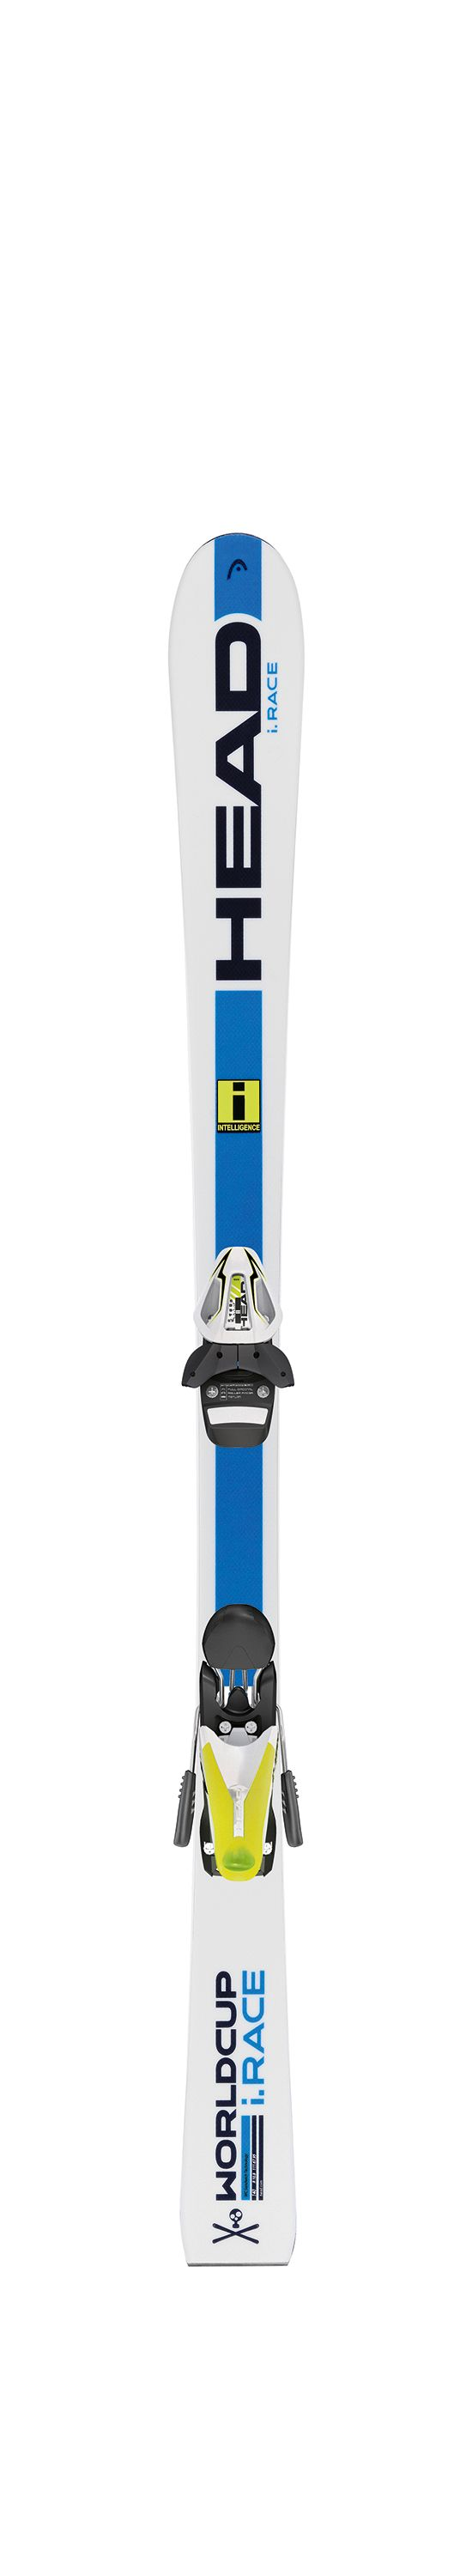 Worldcup Irace Sw Alpinski WHITE/BLUE